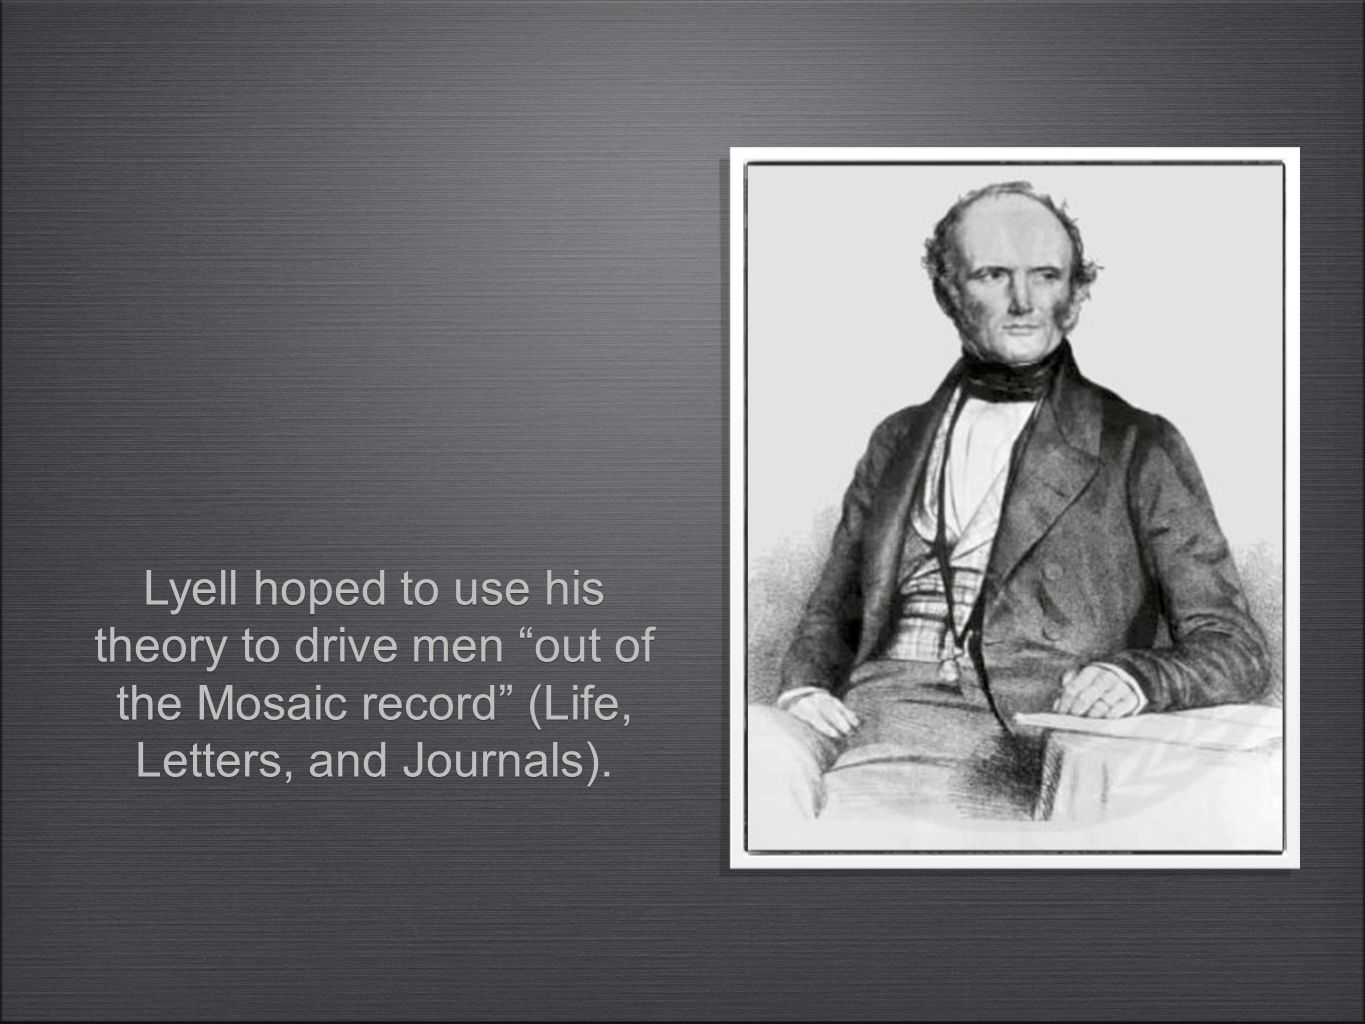 Lyell hoped to use his theory to drive men out of the Mosaic record (Life, Letters, and Journals).